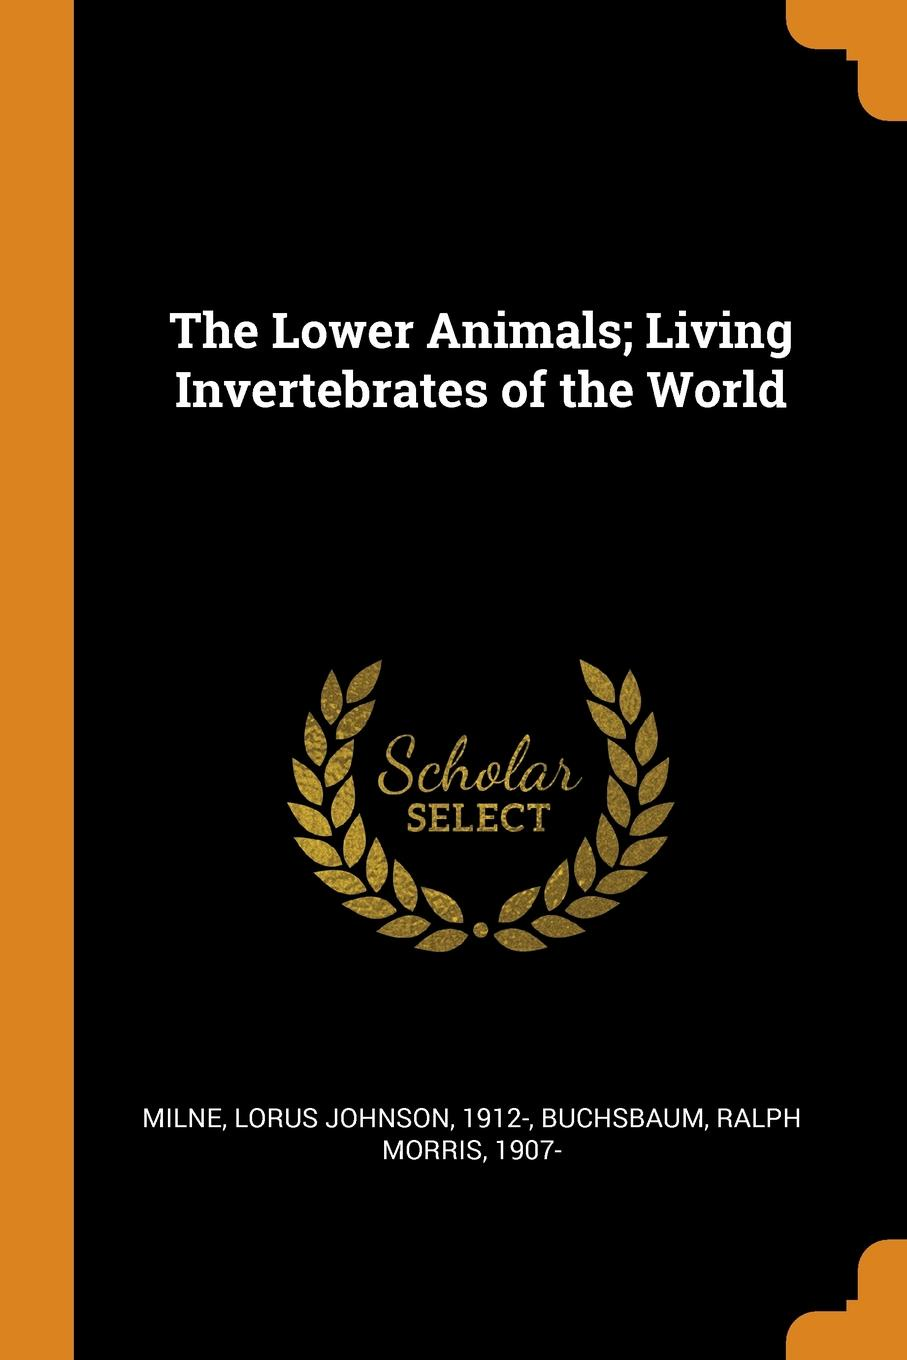 Lorus Johnson Milne, Ralph Morris Buchsbaum The Lower Animals; Living Invertebrates of the World